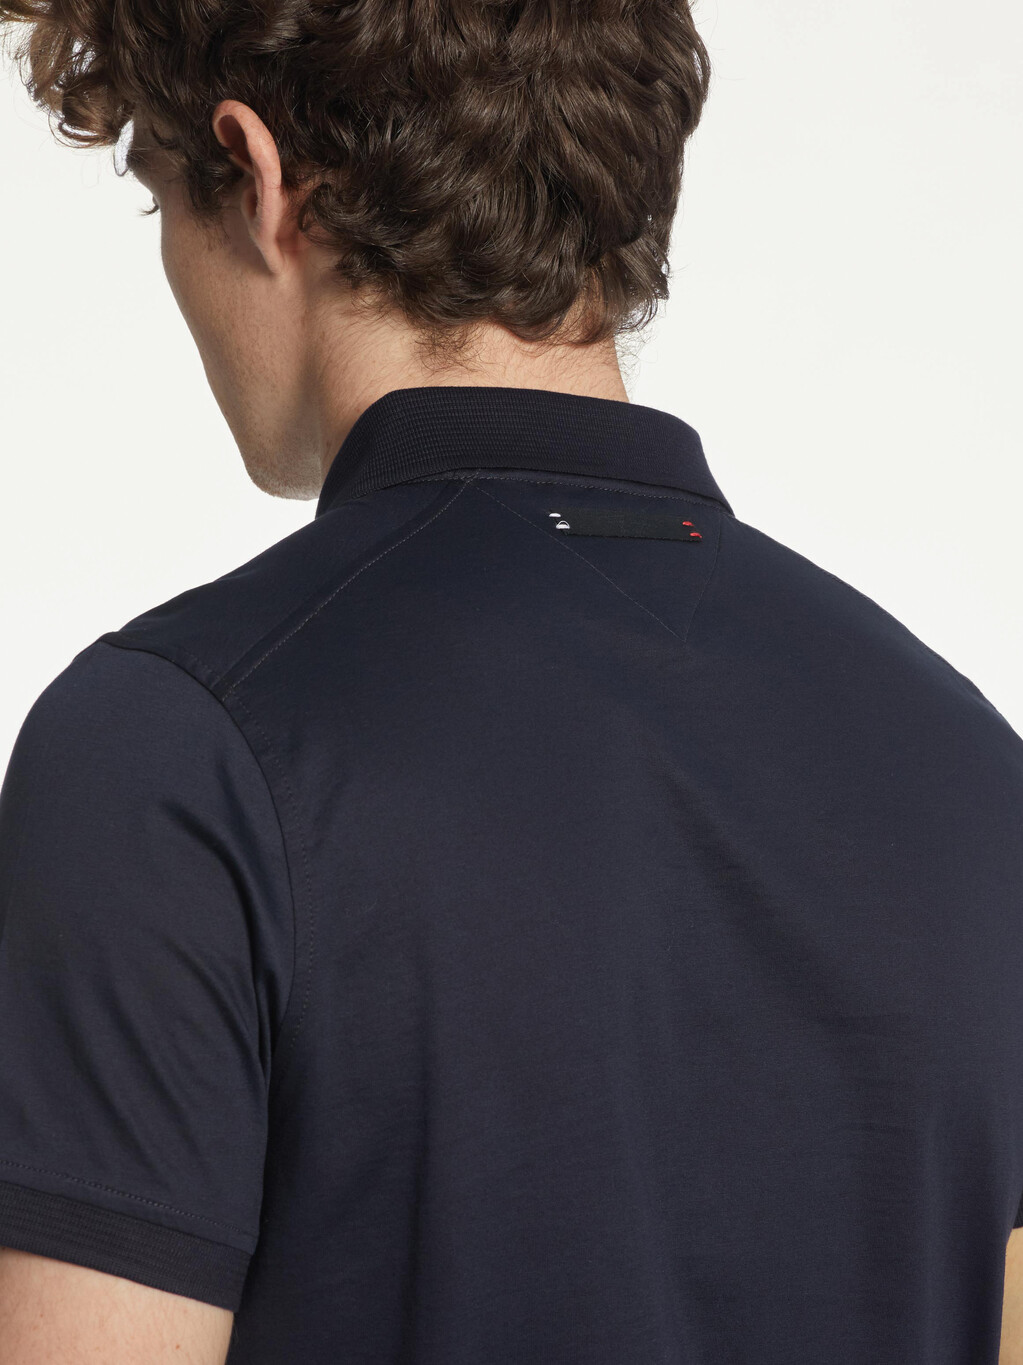 1985 Elevated Slim Fit Polo